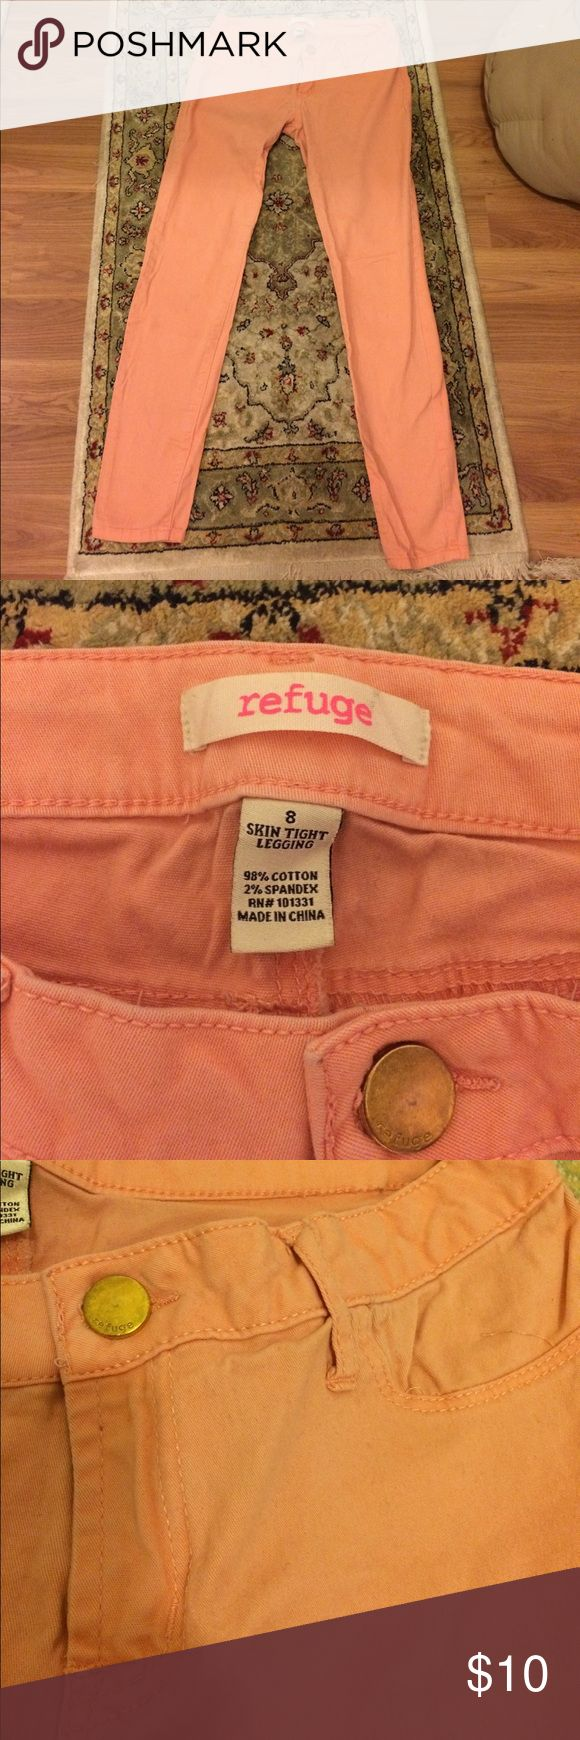 Refuge pants These salmon colored/pink pants are so cute! You'll just love them! They don't have front pockets except the little one shown in a pic above. Has 2 back pockets. From waist to bottom these are 34 inches long. From waistline is 1ft 3in long. refuge Pants Ankle & Cropped